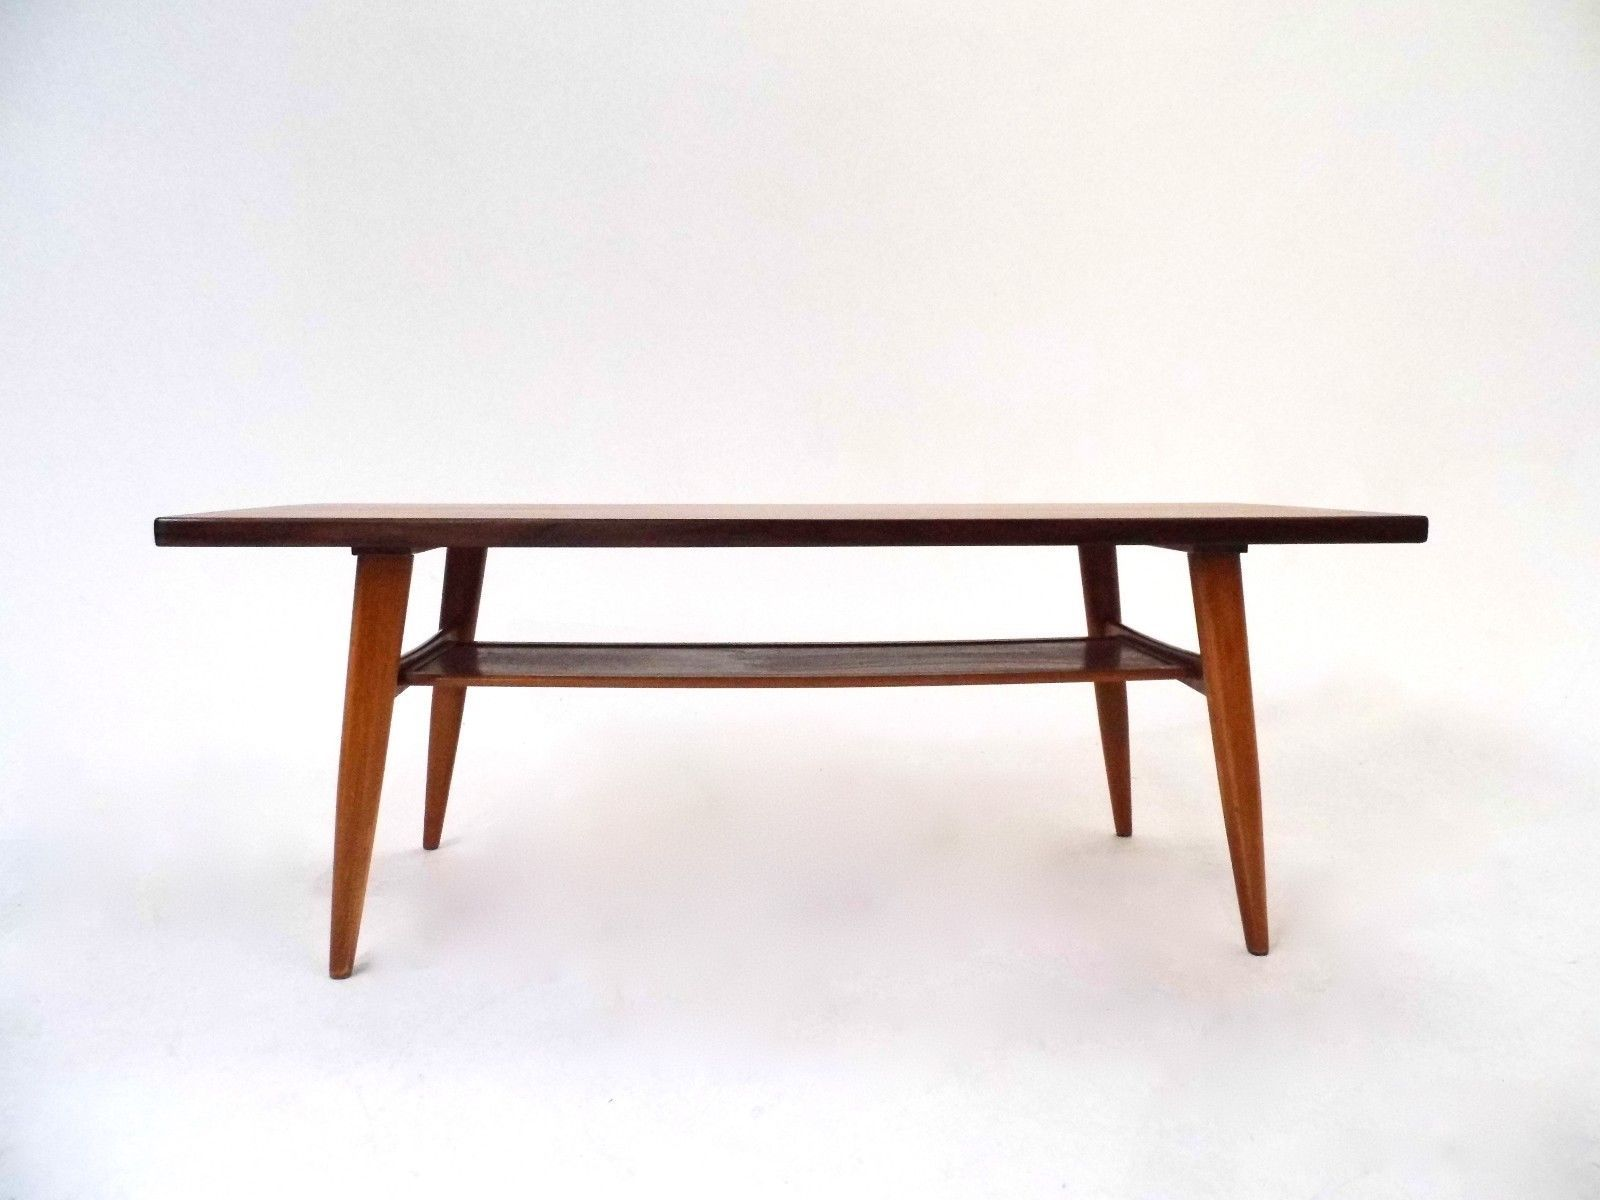 Norwegian Teak Coffee Table with Shelf 1960s for sale at Pamono